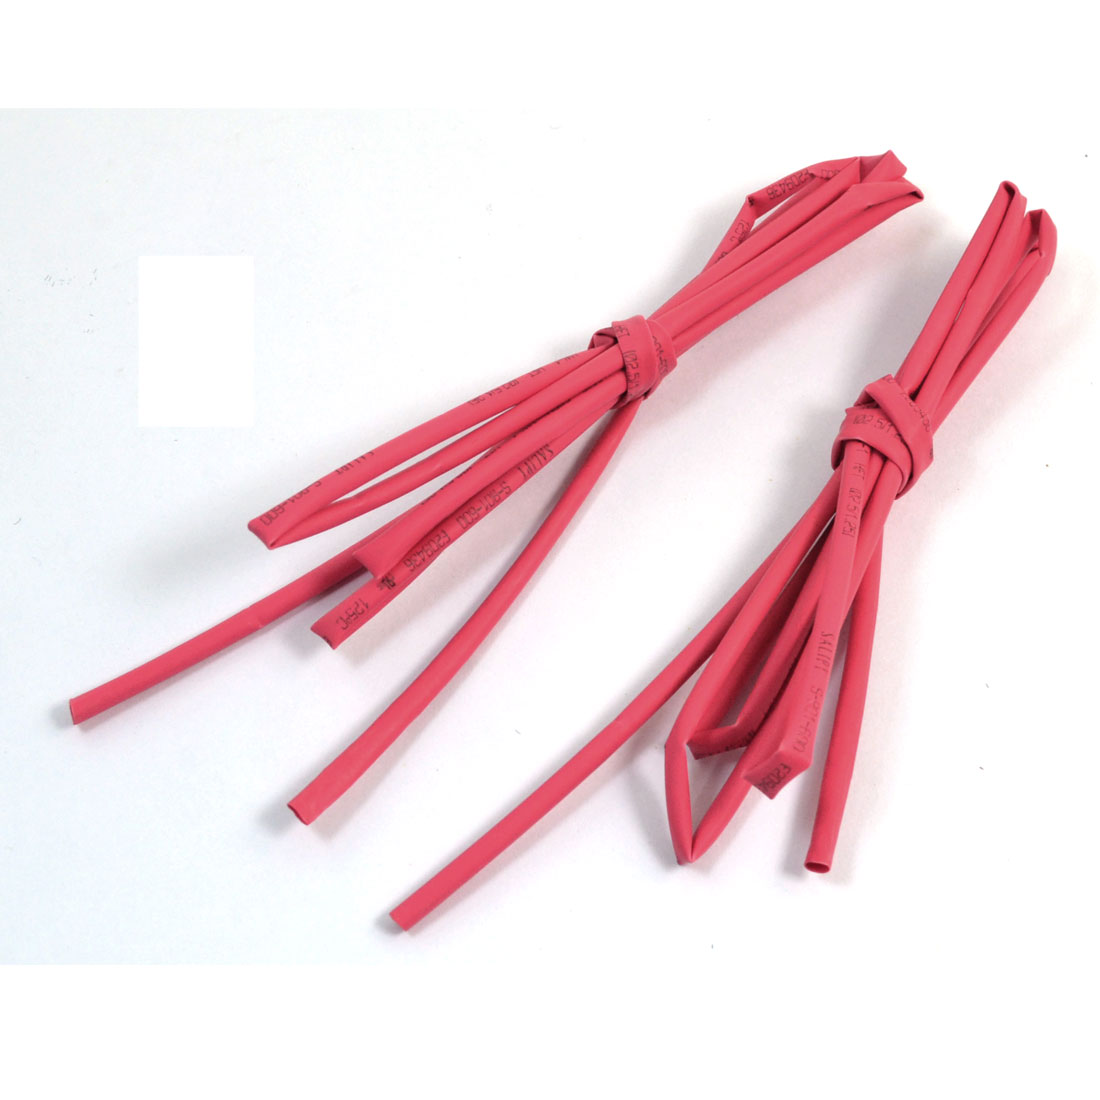 2 Pcs 600V 125C Dia Ratio 2/1 2.5mm Red Insulated Heat Shrink Tube Shrinkable Hose 1m 3.3ft